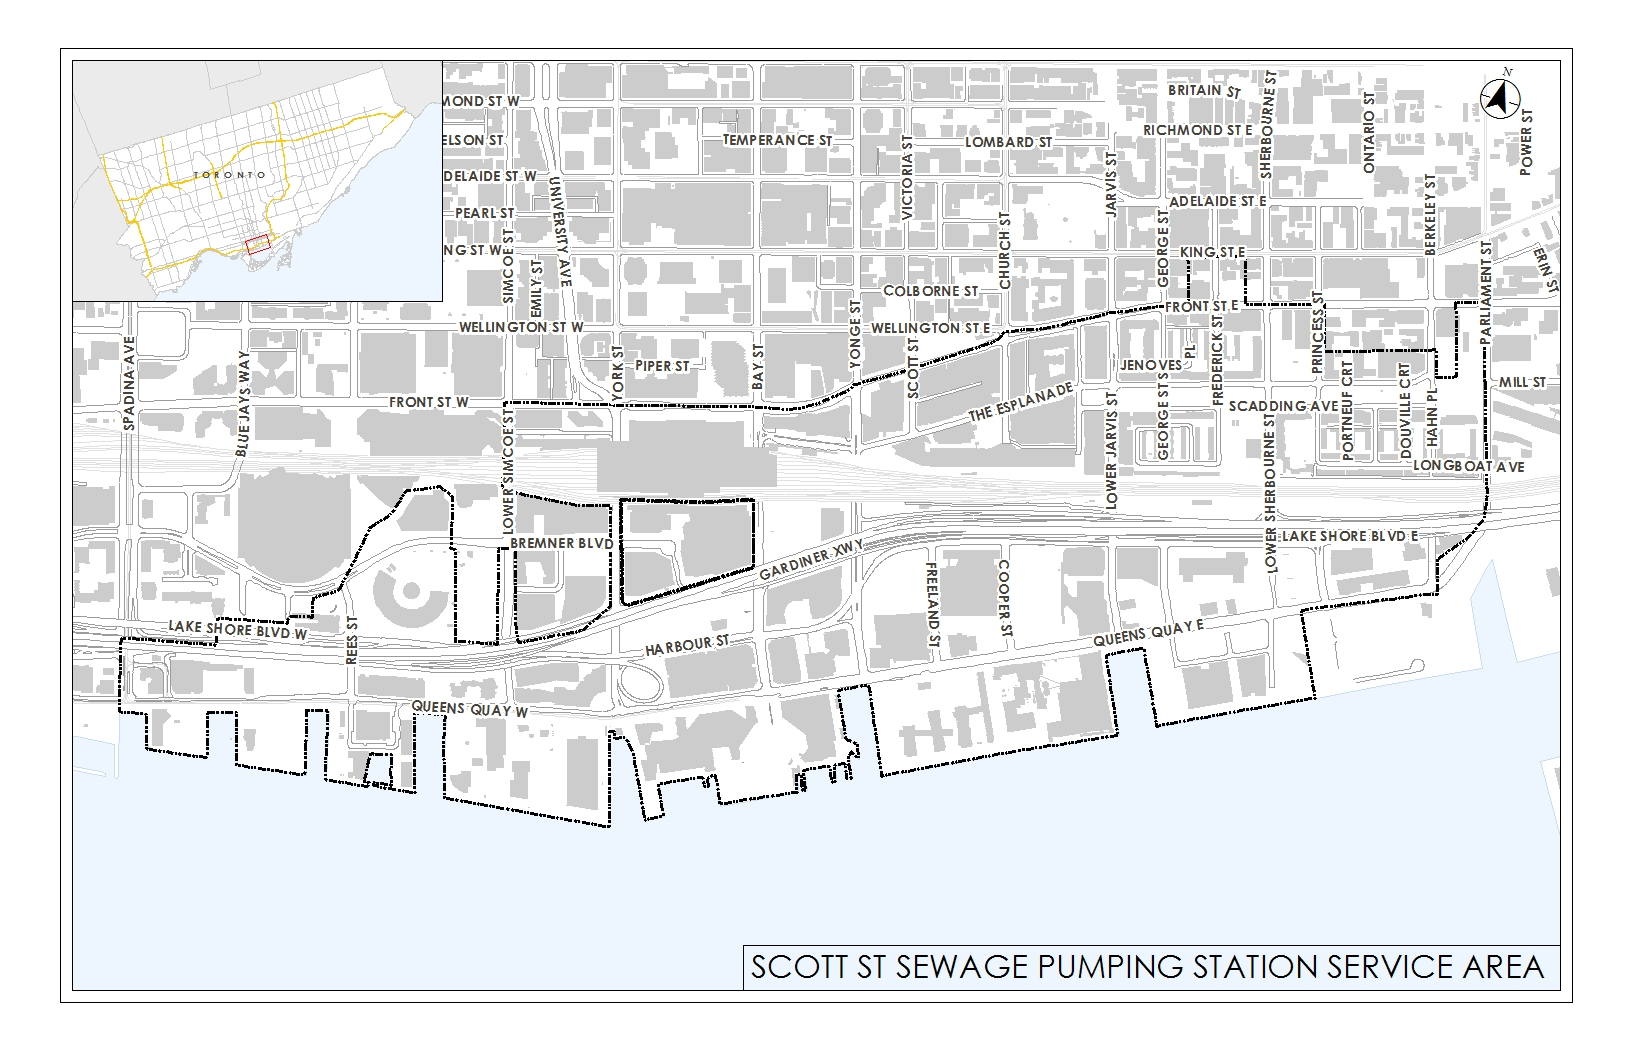 This map outlines the Scott Street Sewage Pumping Station Service Area. The map extends to Spadina Ave., Parliament Street, Front Street and the Lake.